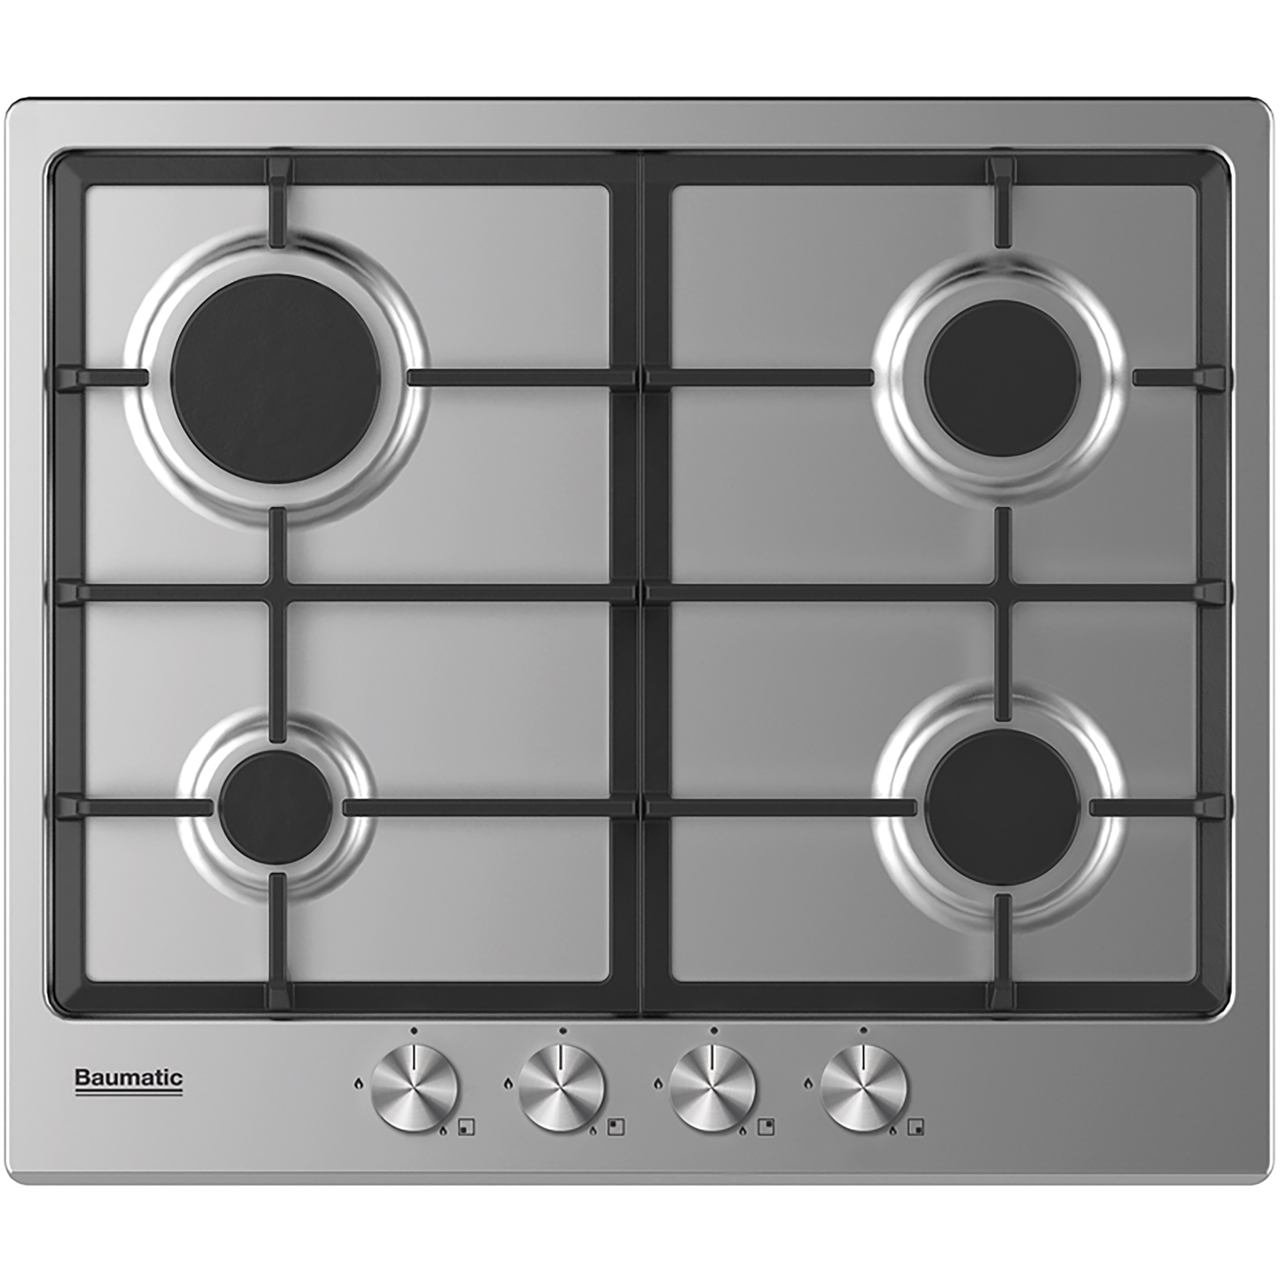 Stainless Steel Baumatic BCPK605X Built In Electric Single Oven and Ceramic Hob Pack Black